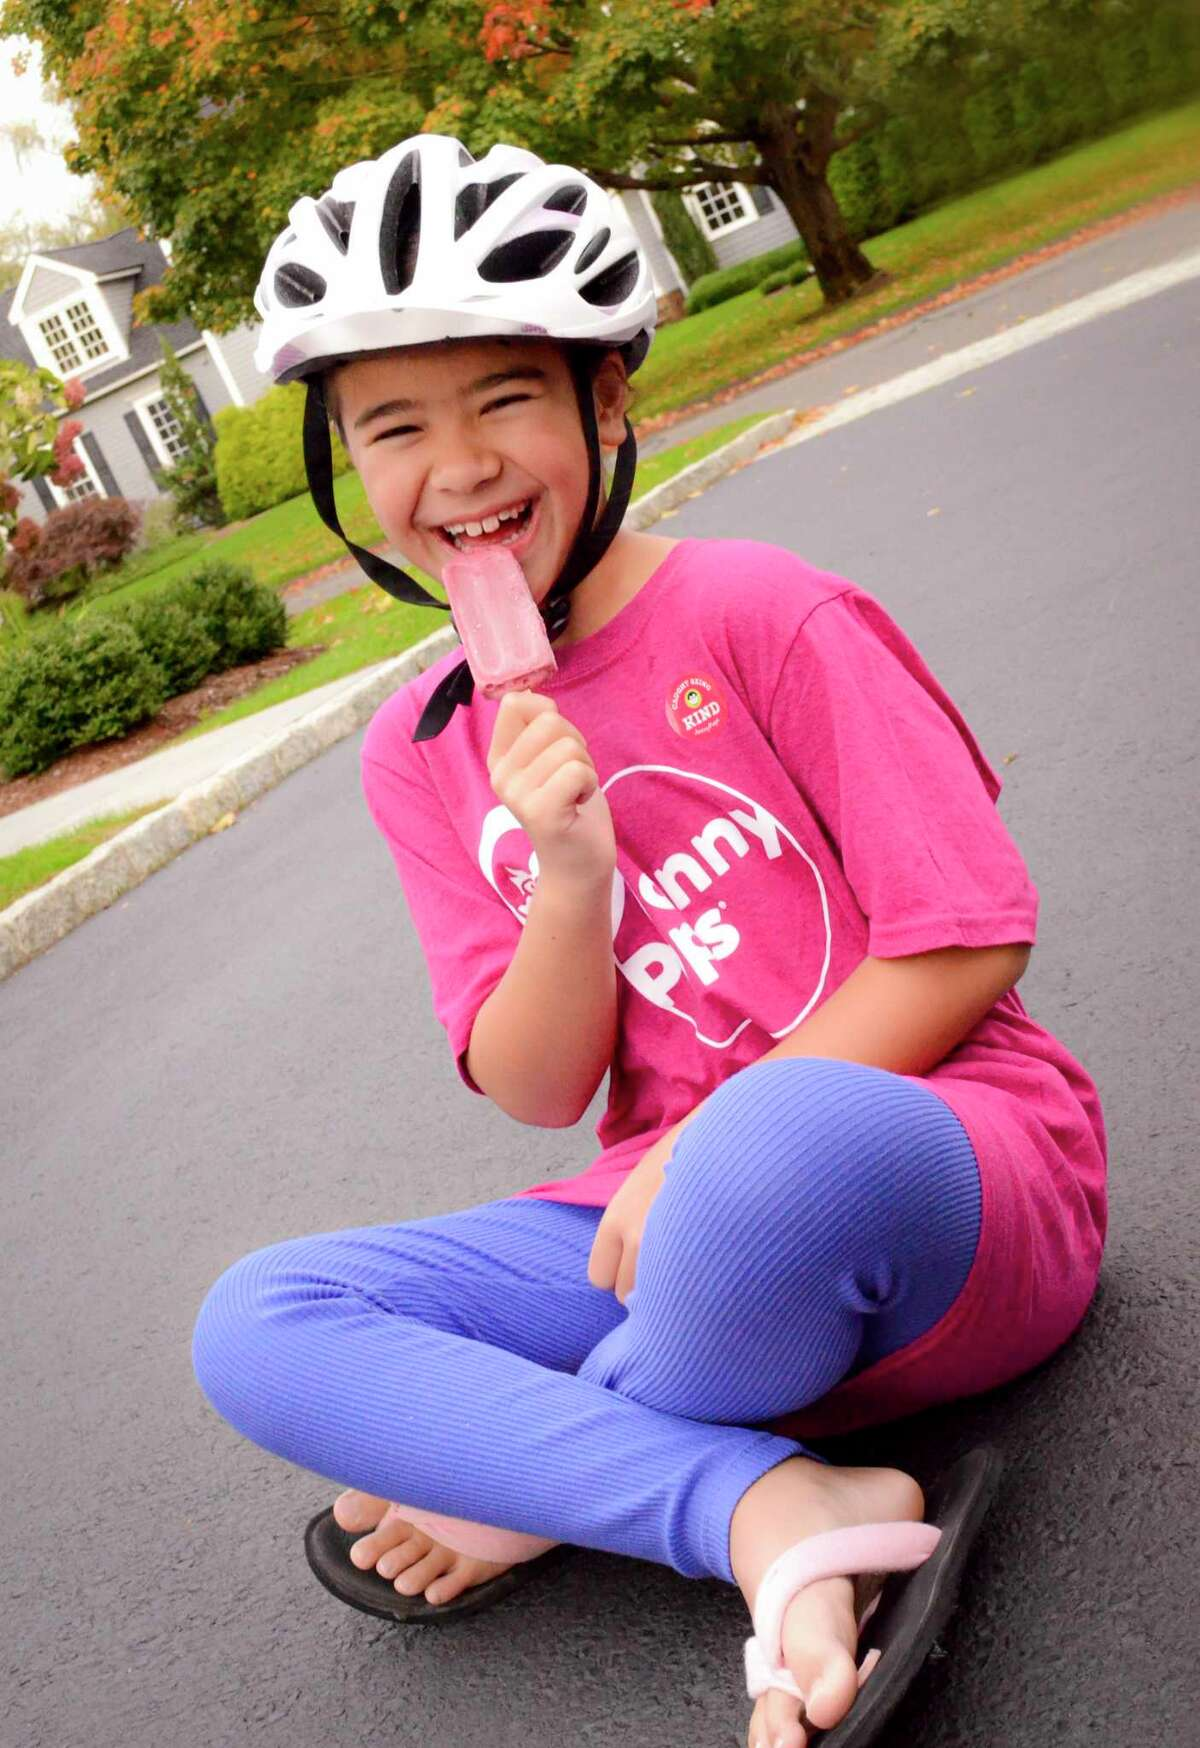 Kristina Yuan's photo of her cousin, Rachel Yuan, was chosen to represent the JonnyPops Kindness is Golden campaign. The photo will be on inserts placed in more than 2 million boxes.